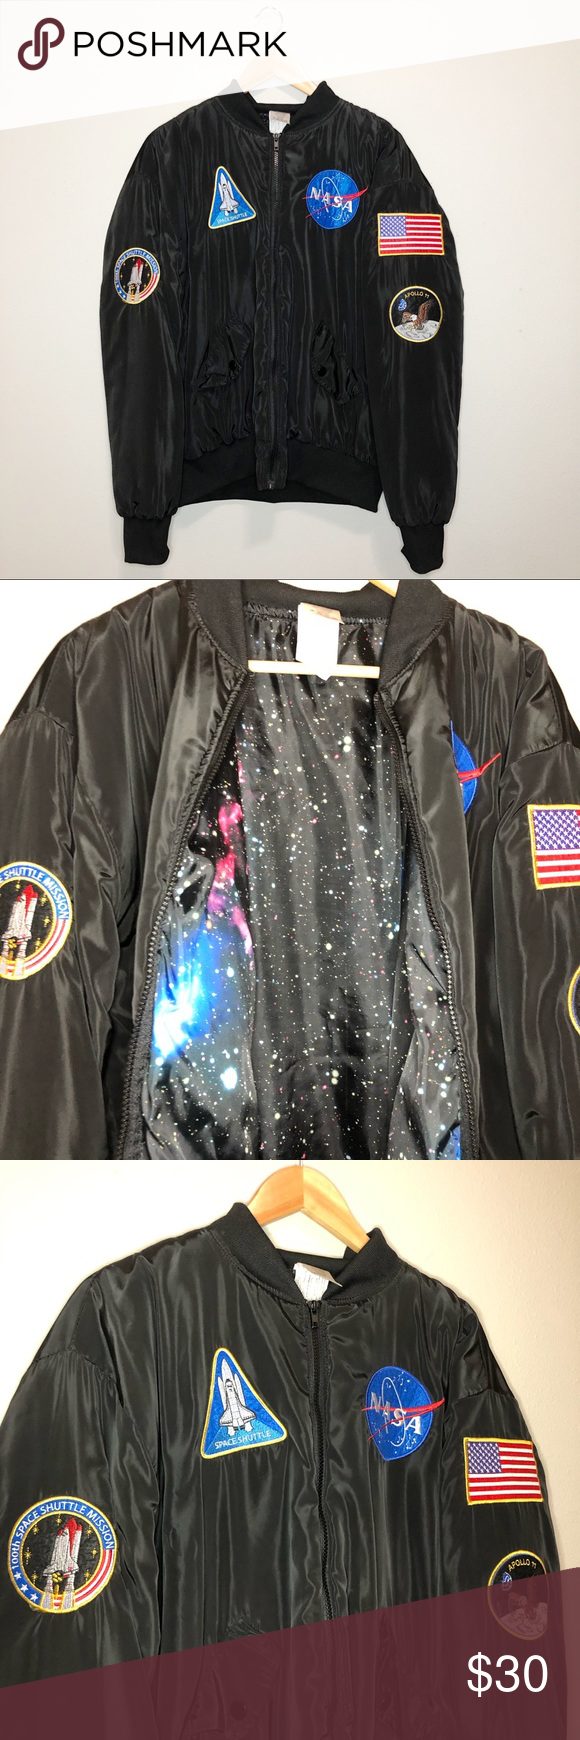 NASA bomber jacket 🌸 NASA black bomber jacket Only worn